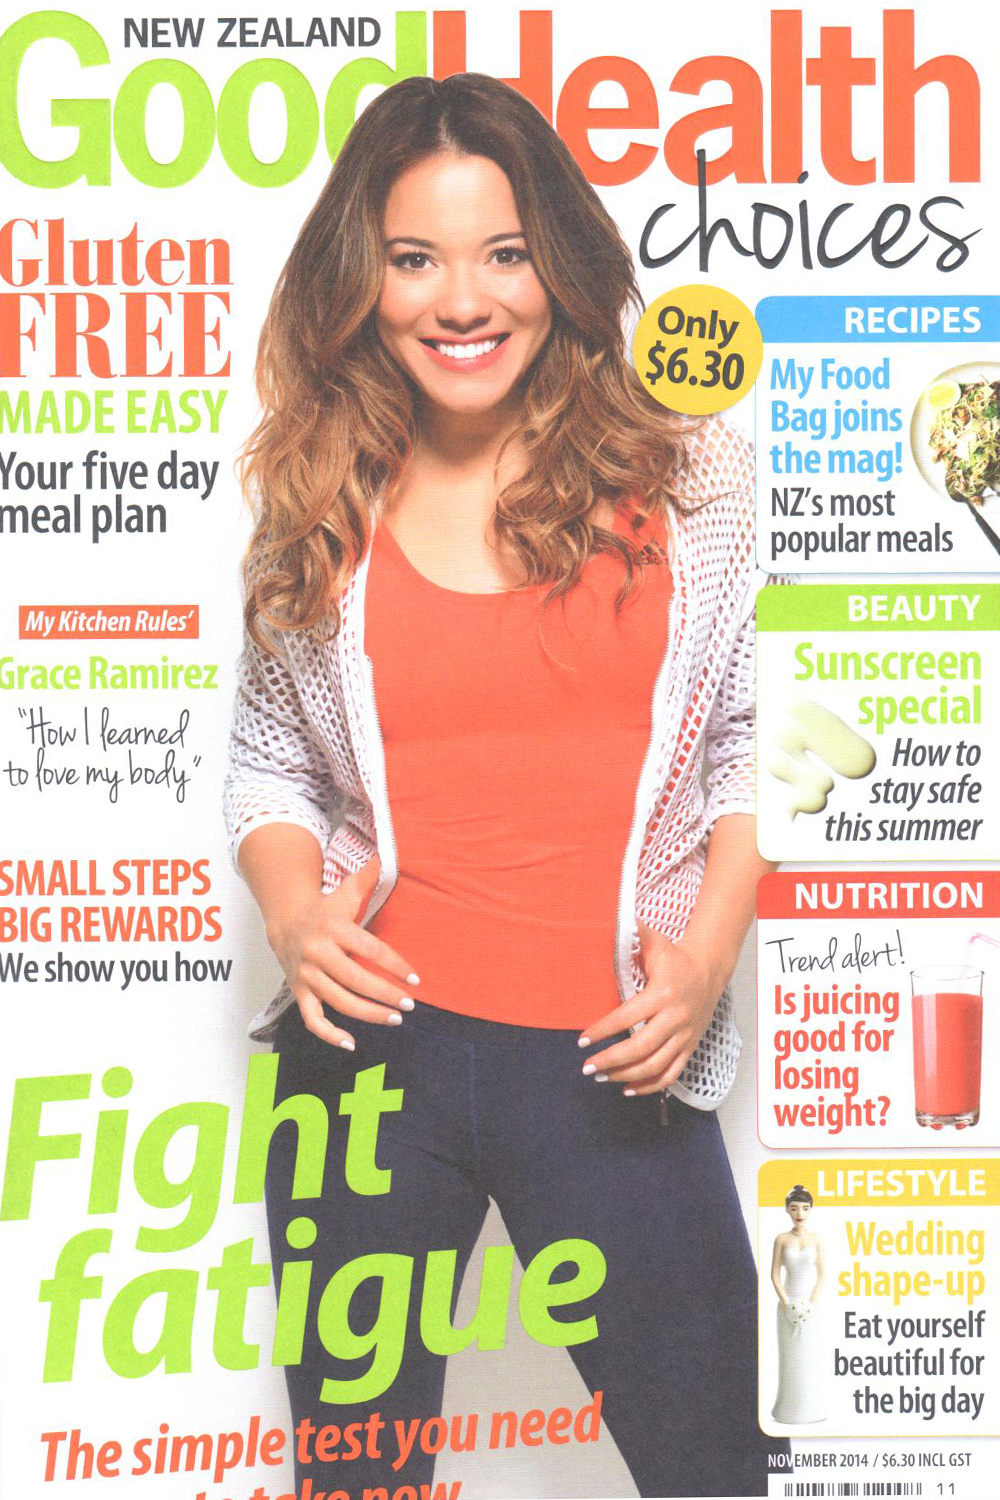 PHB.NZGOODHEALTHCHOICES.NOVEMBERCOVER copy.jpg